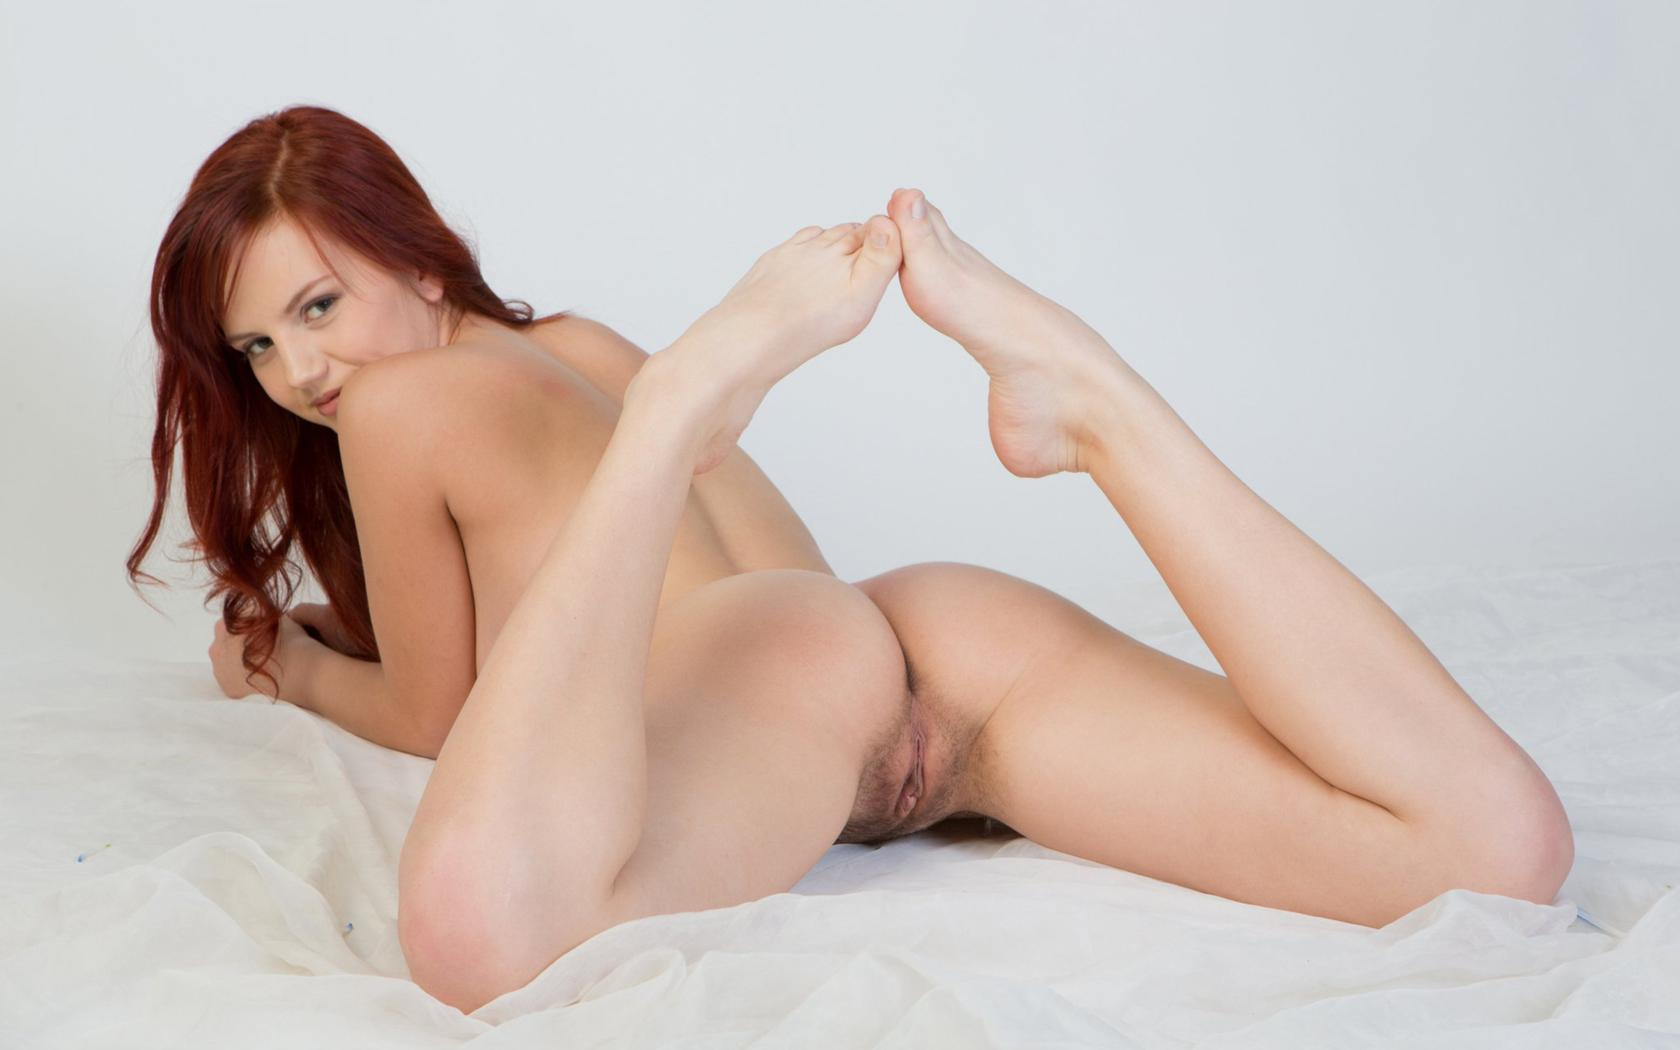 Red head nude naked